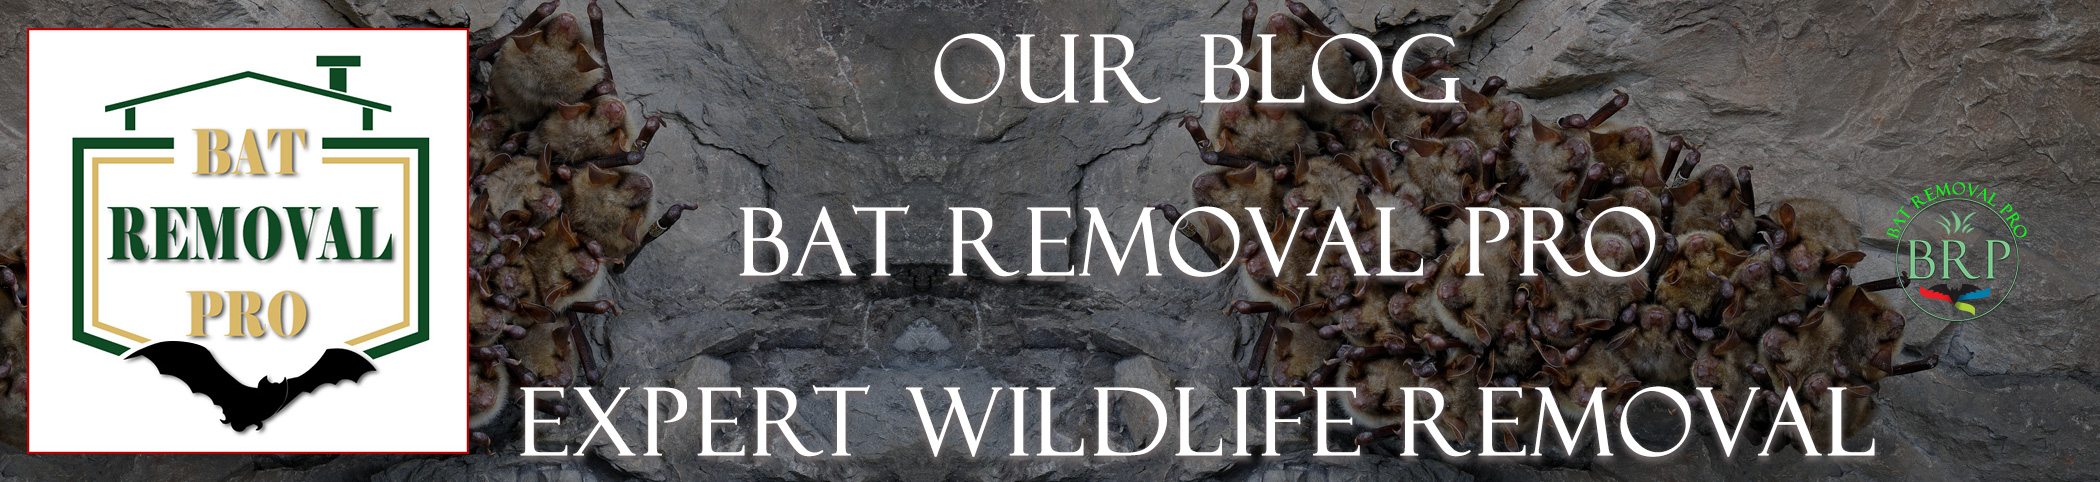 Bat Removal Pro Blog - Number 1 Professionals on Bat Knowledge and Removal